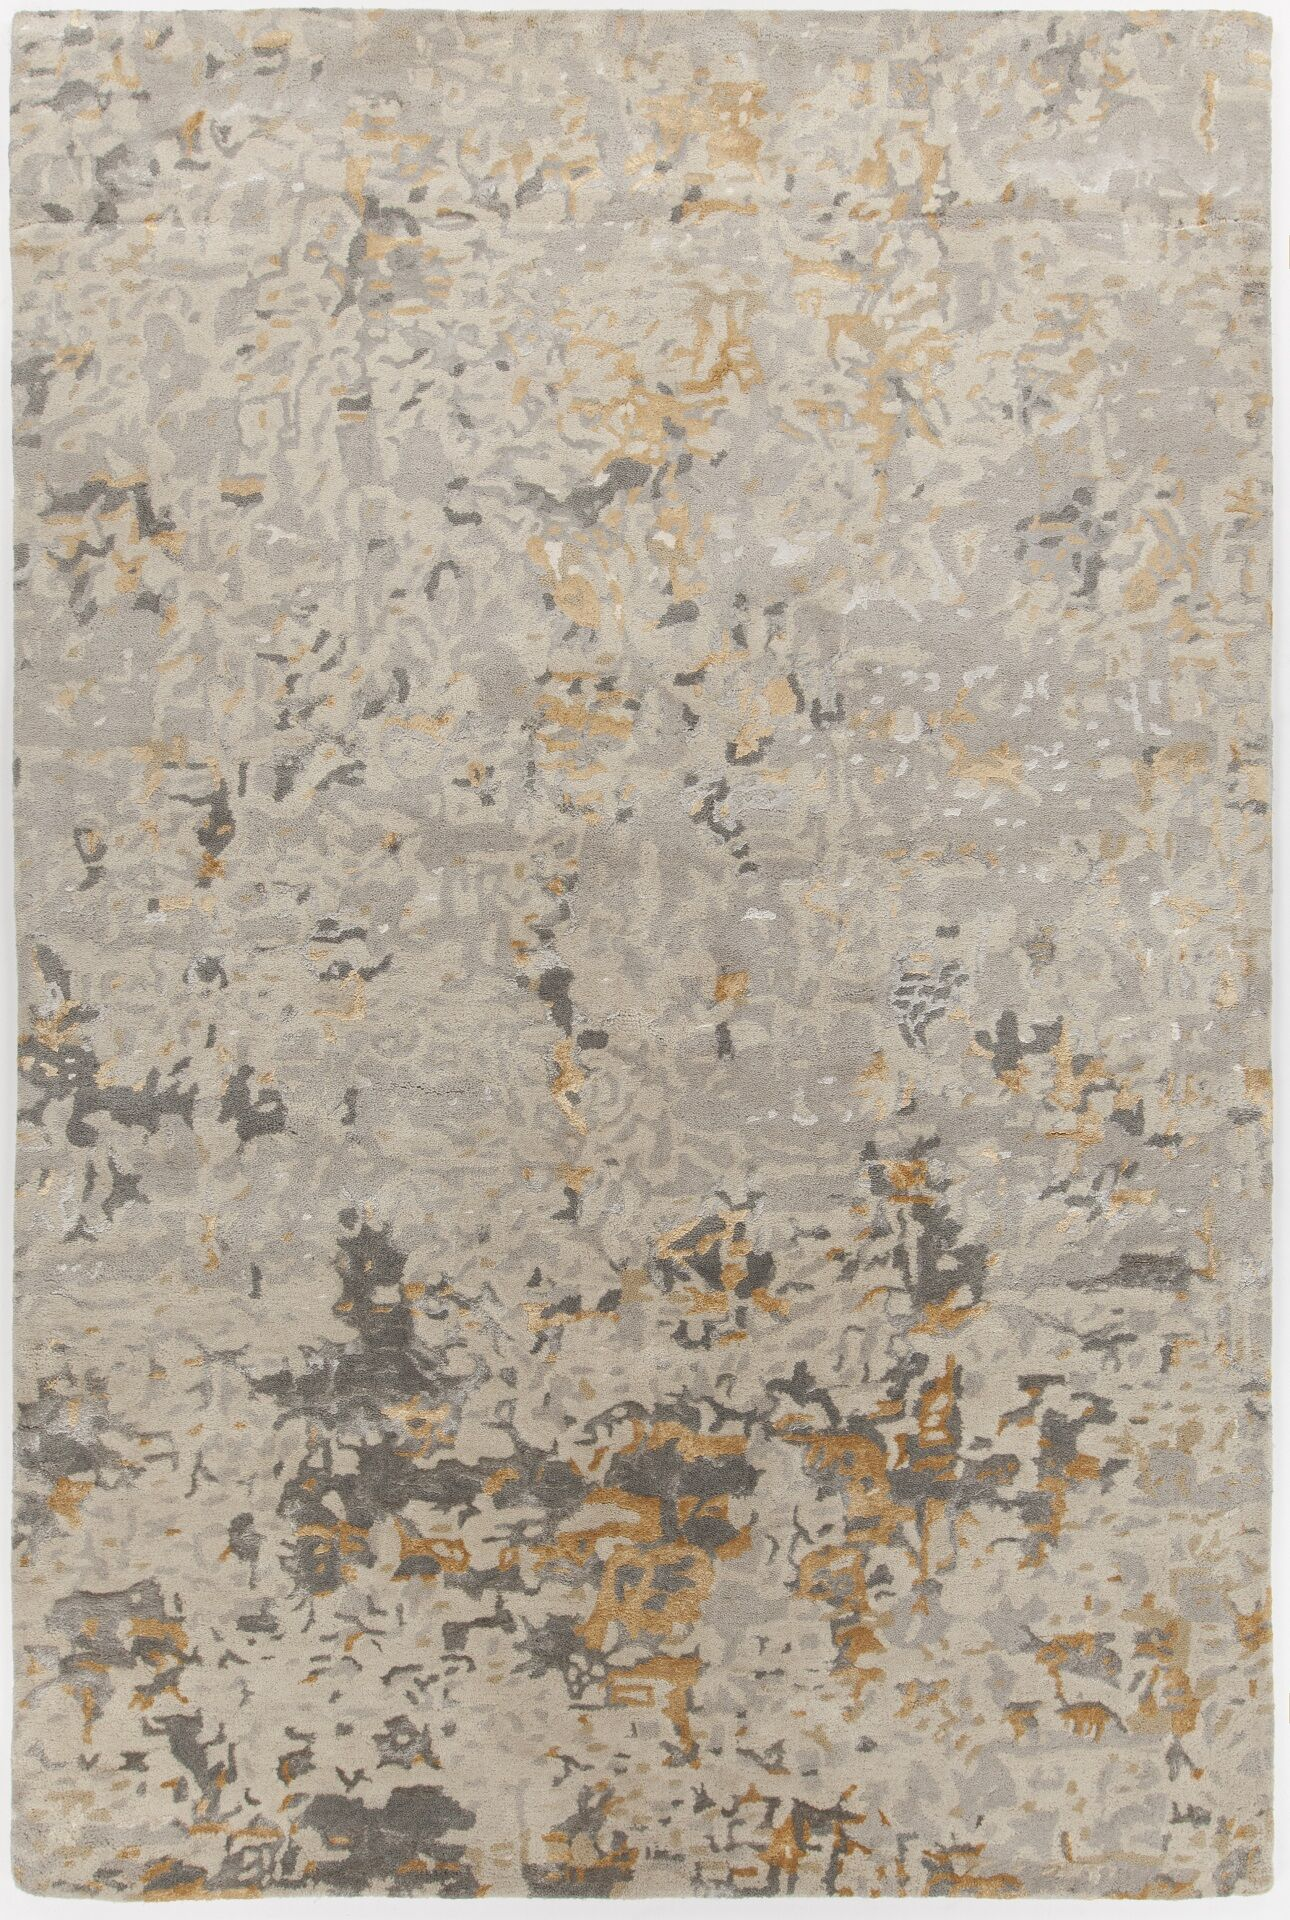 Powell Hand-Tufted Beige Area Rug Rug Size: Rectangle 9' x 13'